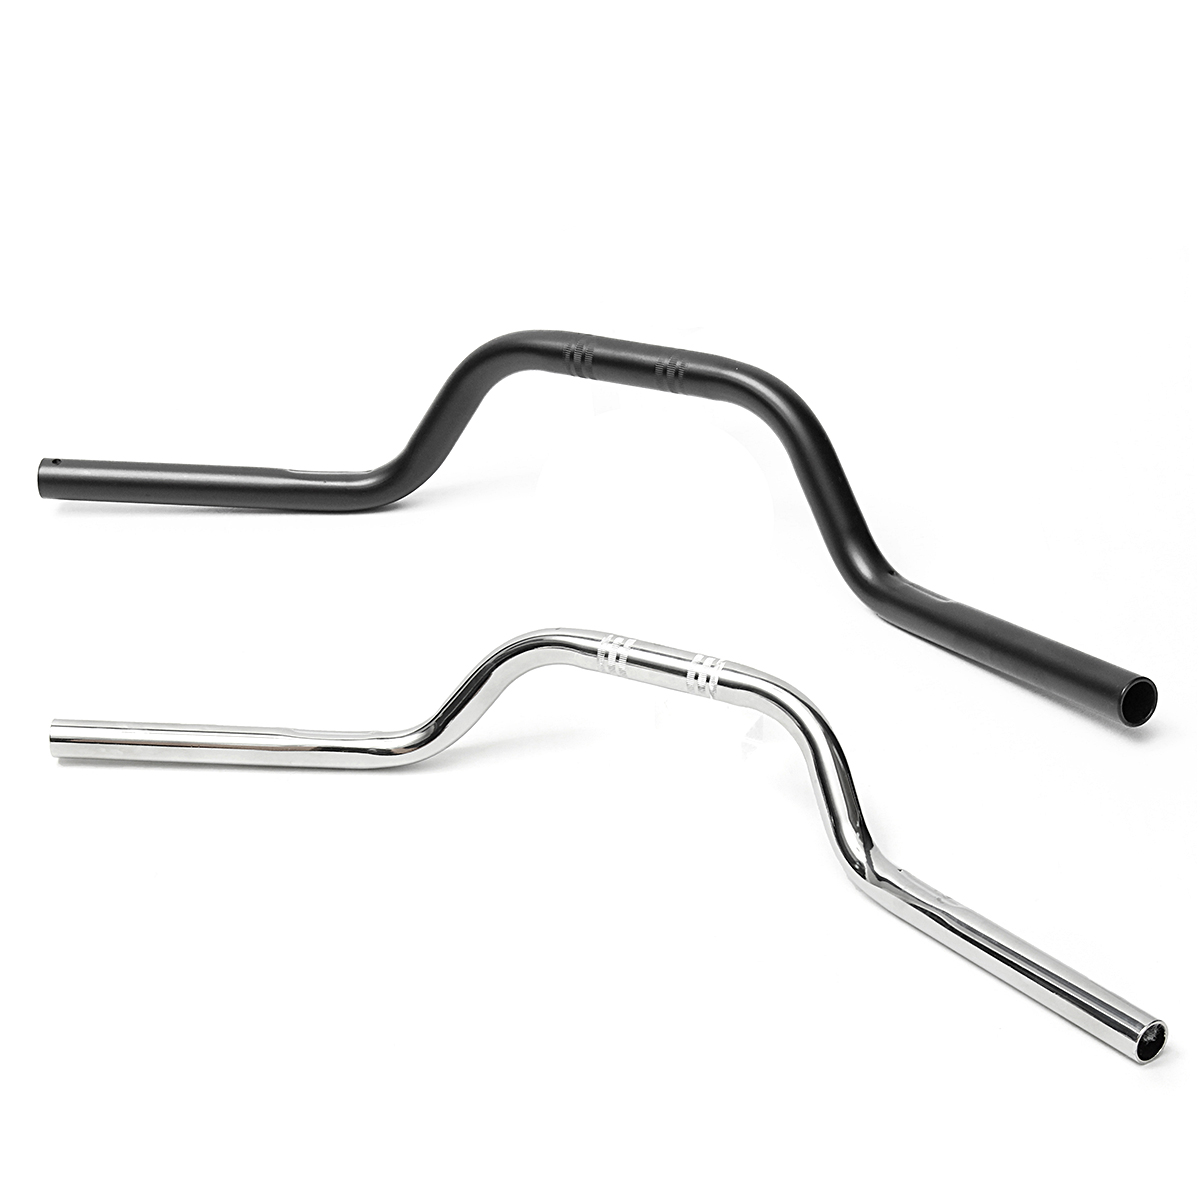 1 inch 25mm Aluminum Handlebar Drag Bar For Harley